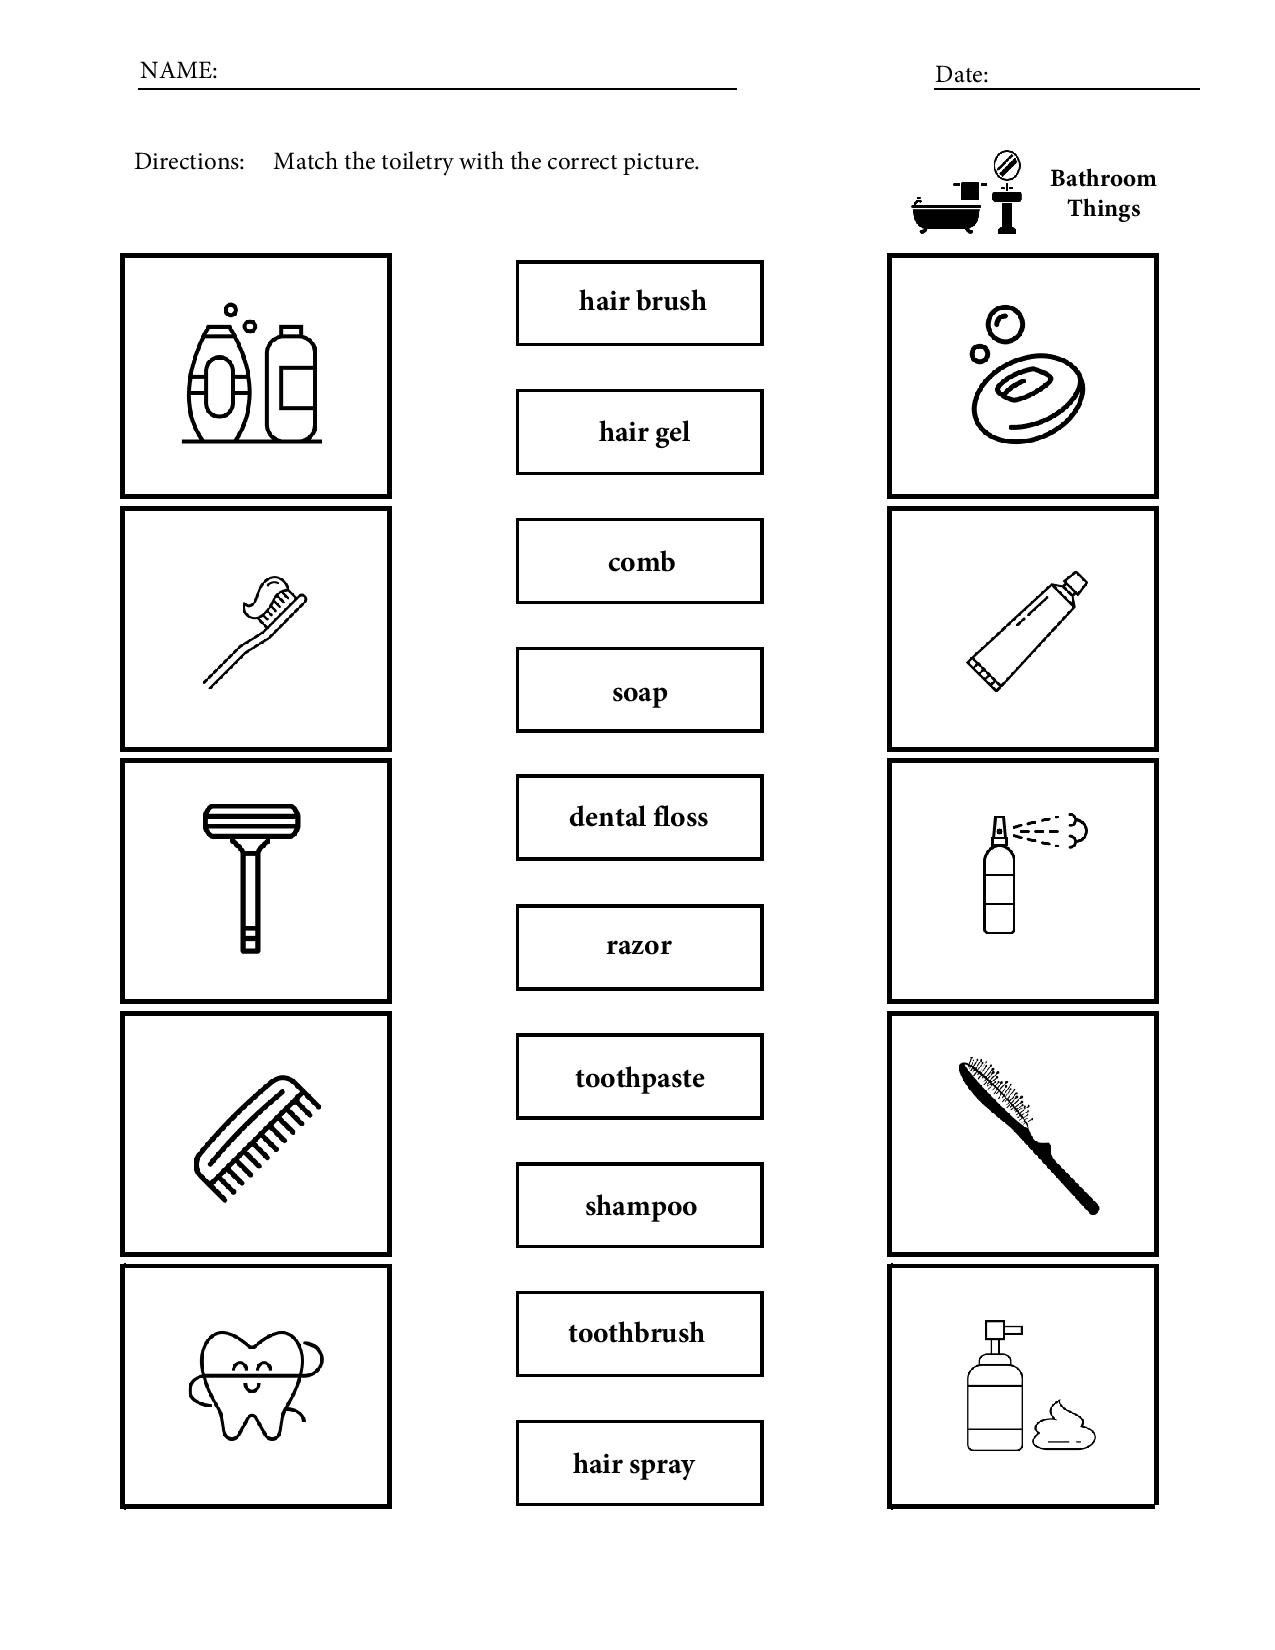 Bathroom Things Toiletries Vocabulary Worksheets For